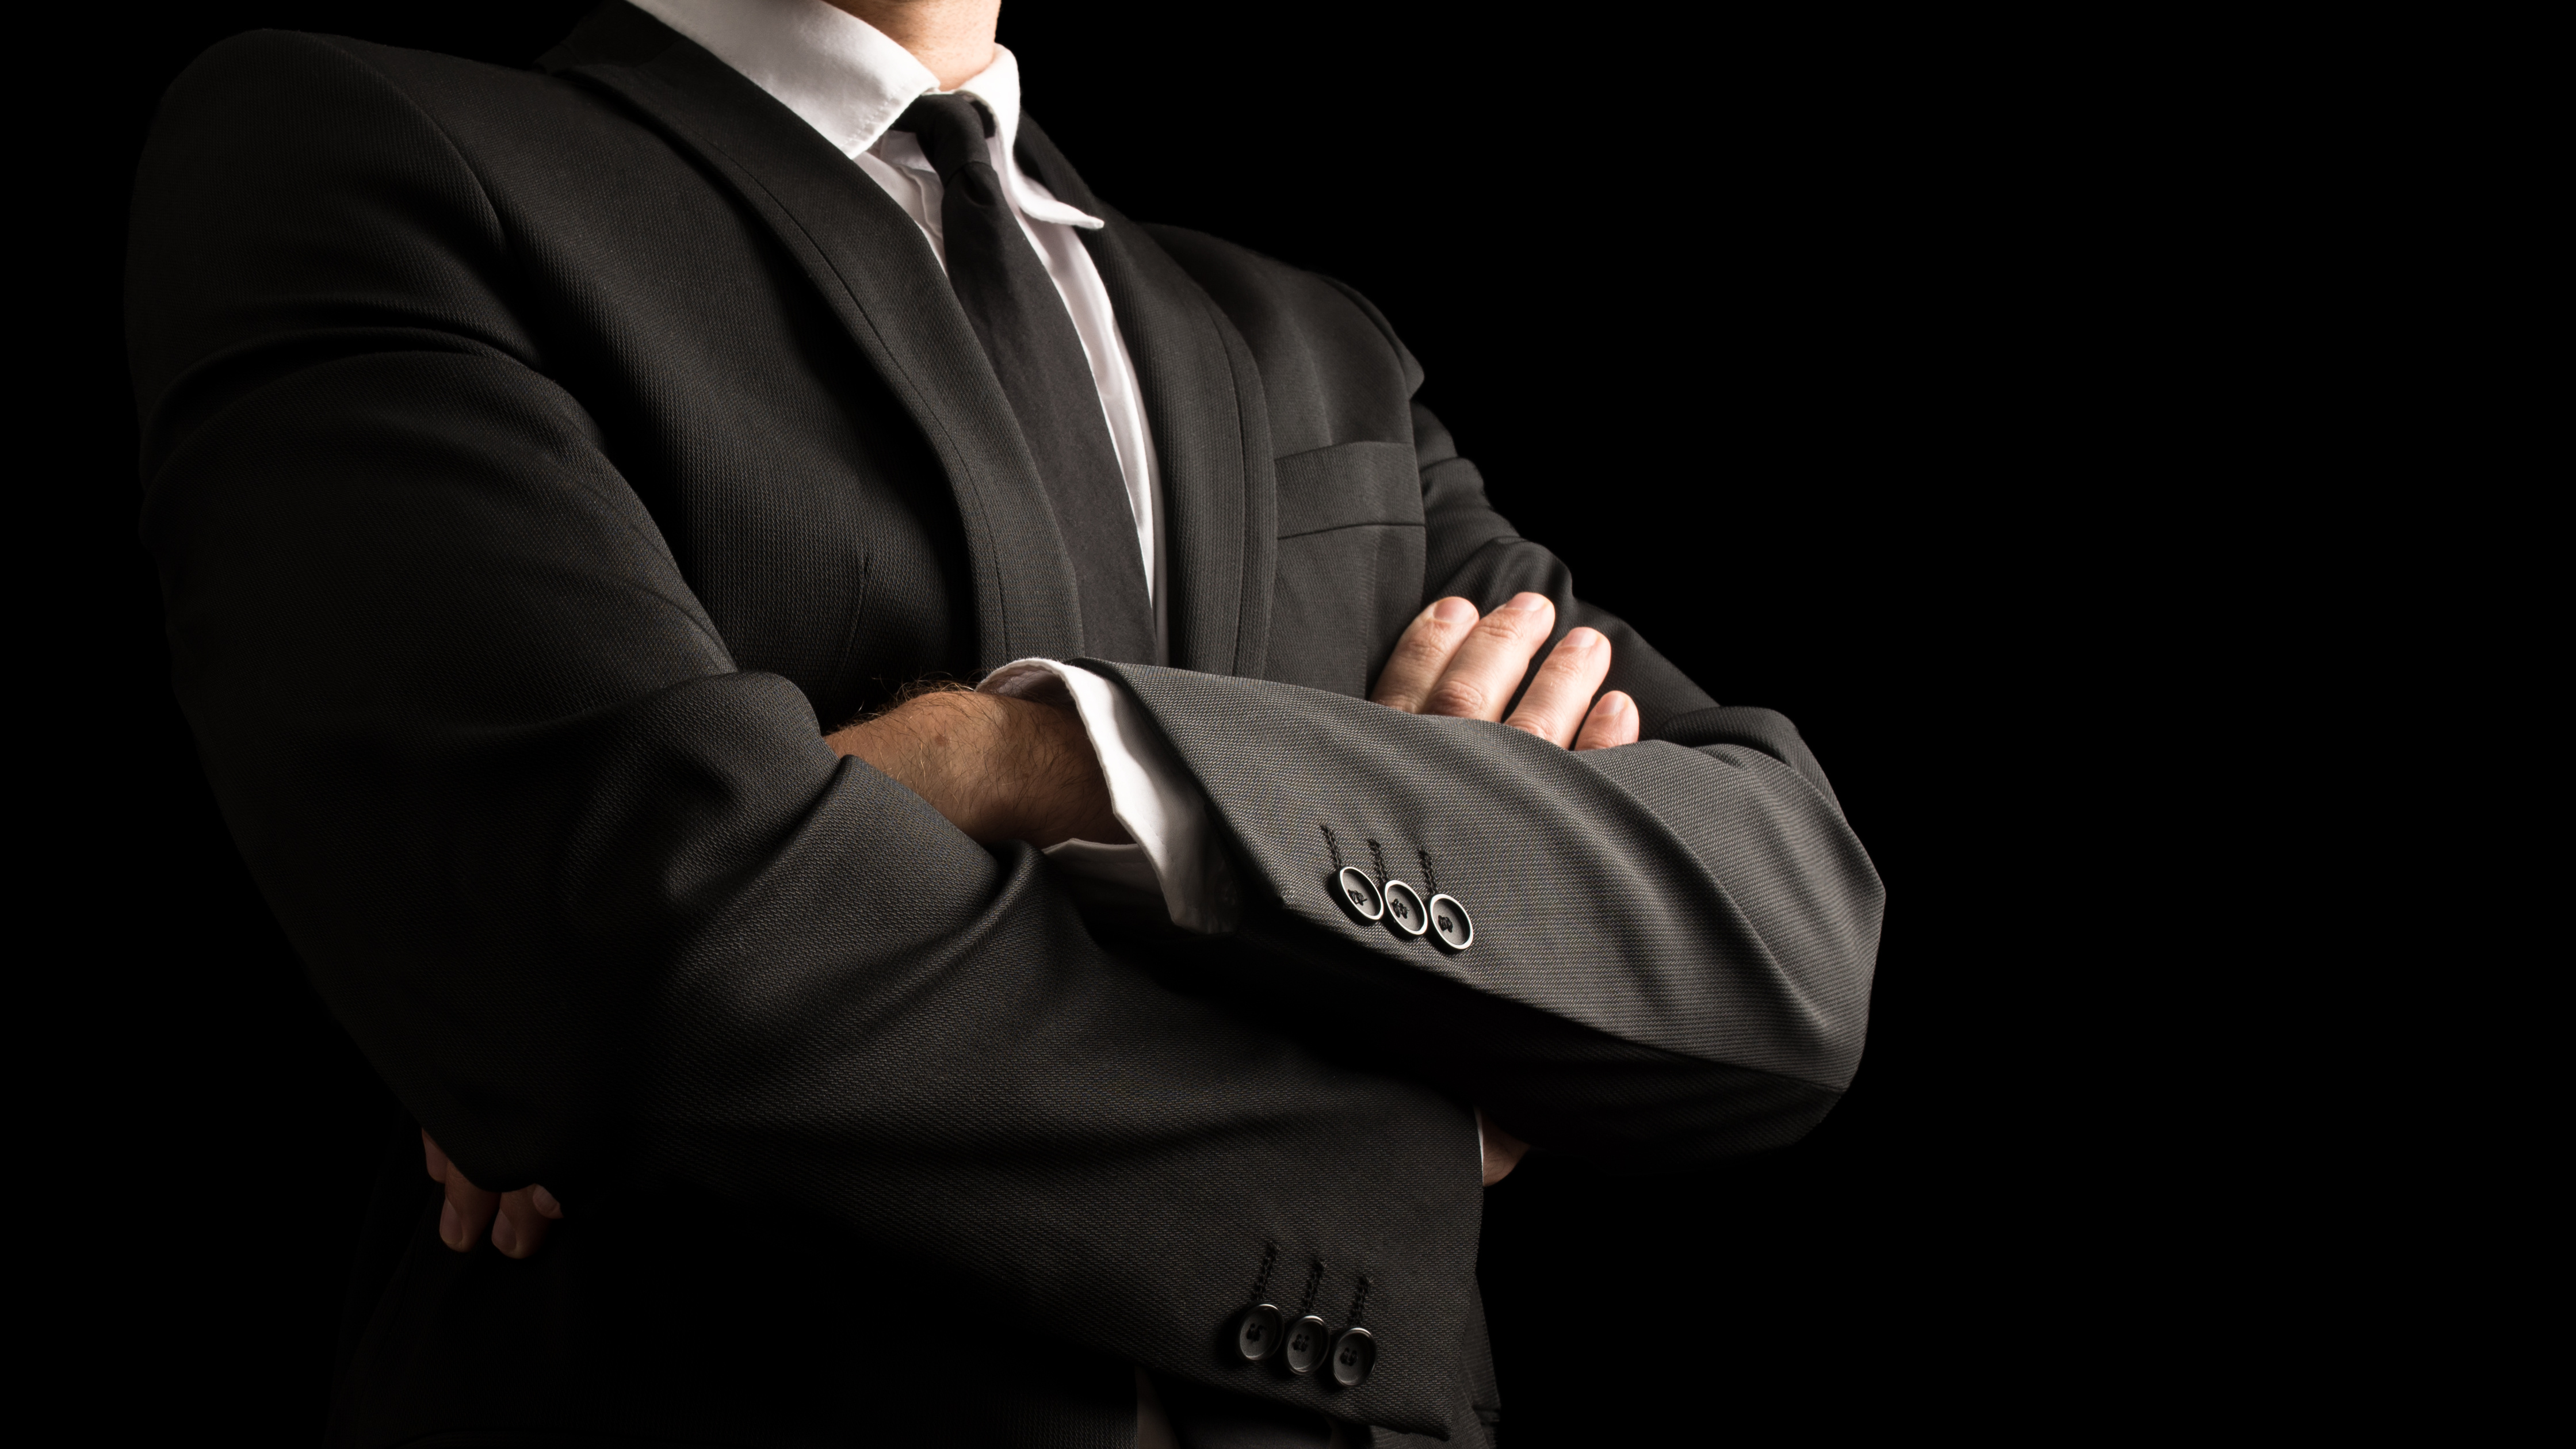 Top 5 Reasons for Hiring a Private Investigator - Texas